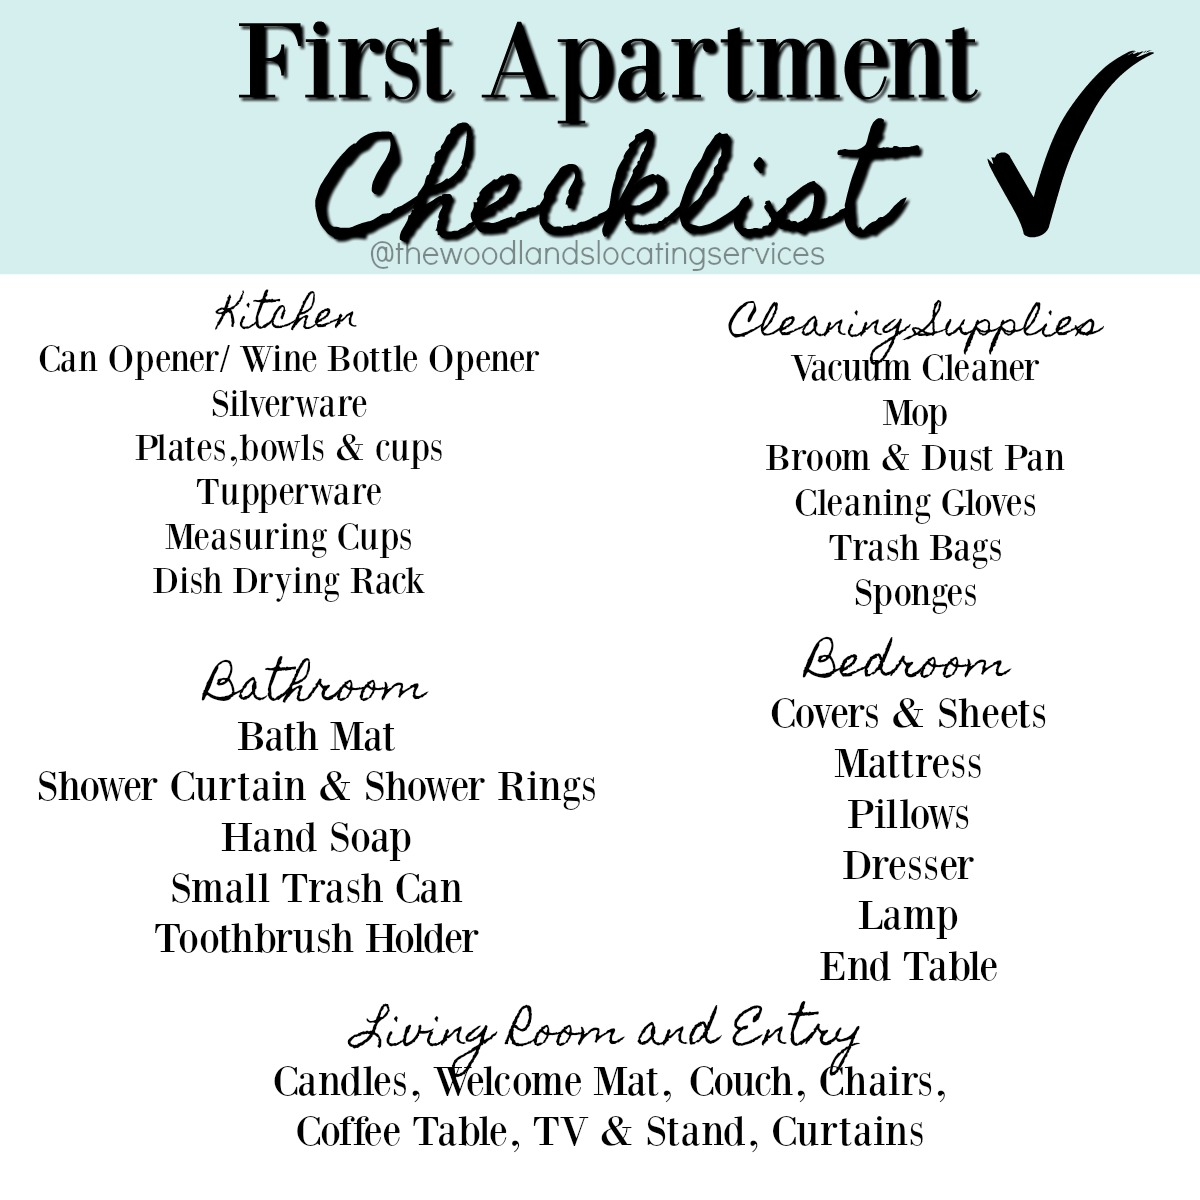 Firstapartmentchecklist